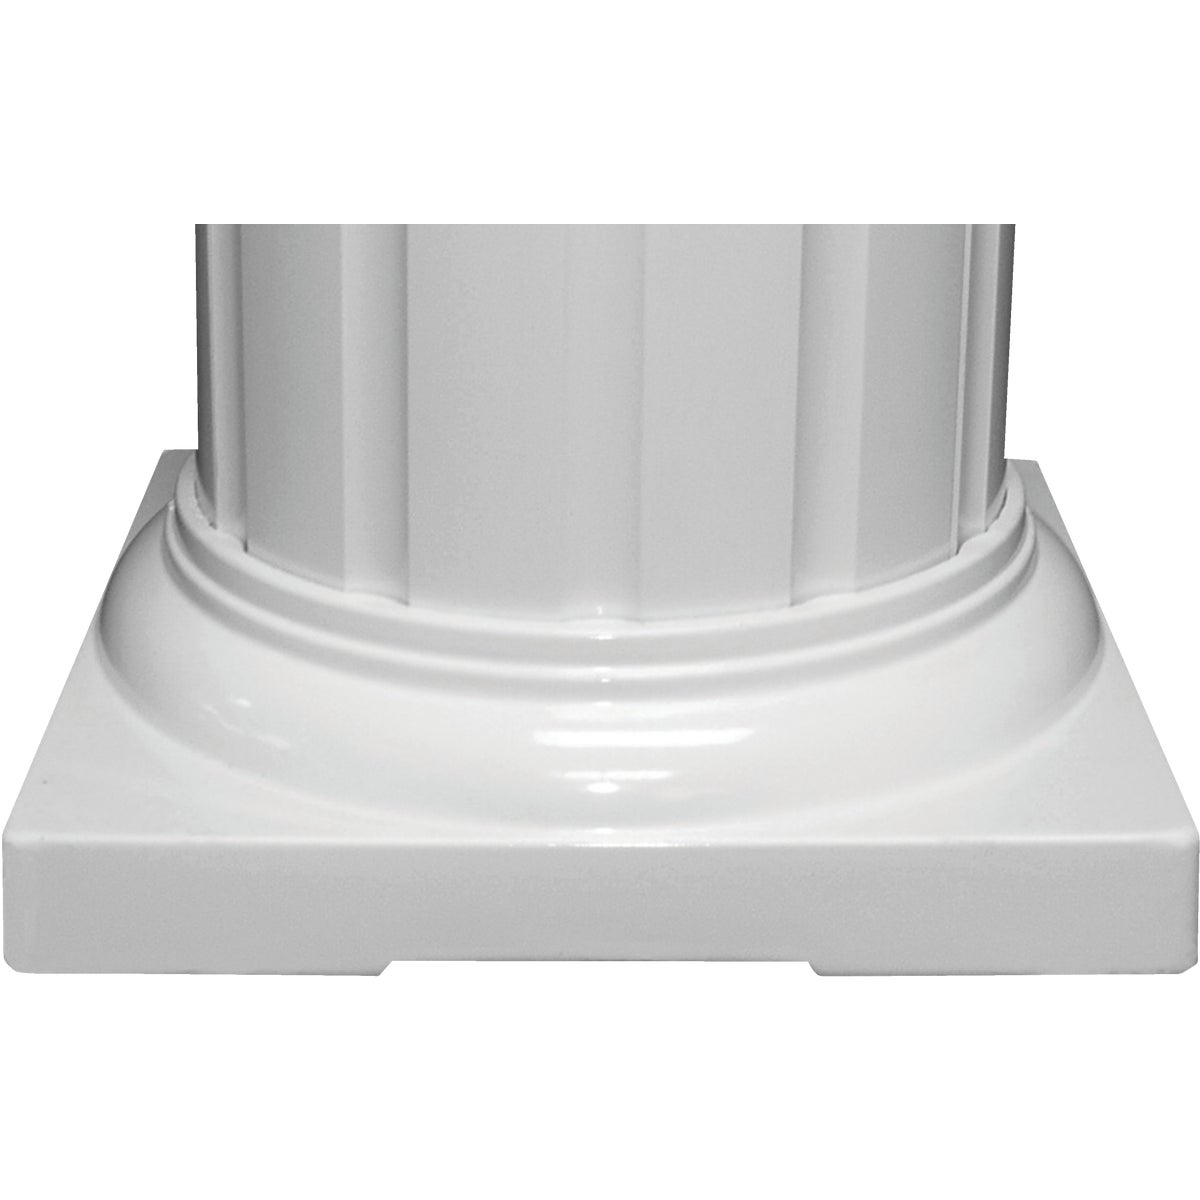 "8"" ROUND CAP/BASE SET - RDSTD08WHT by DIXIE PACIFIC"